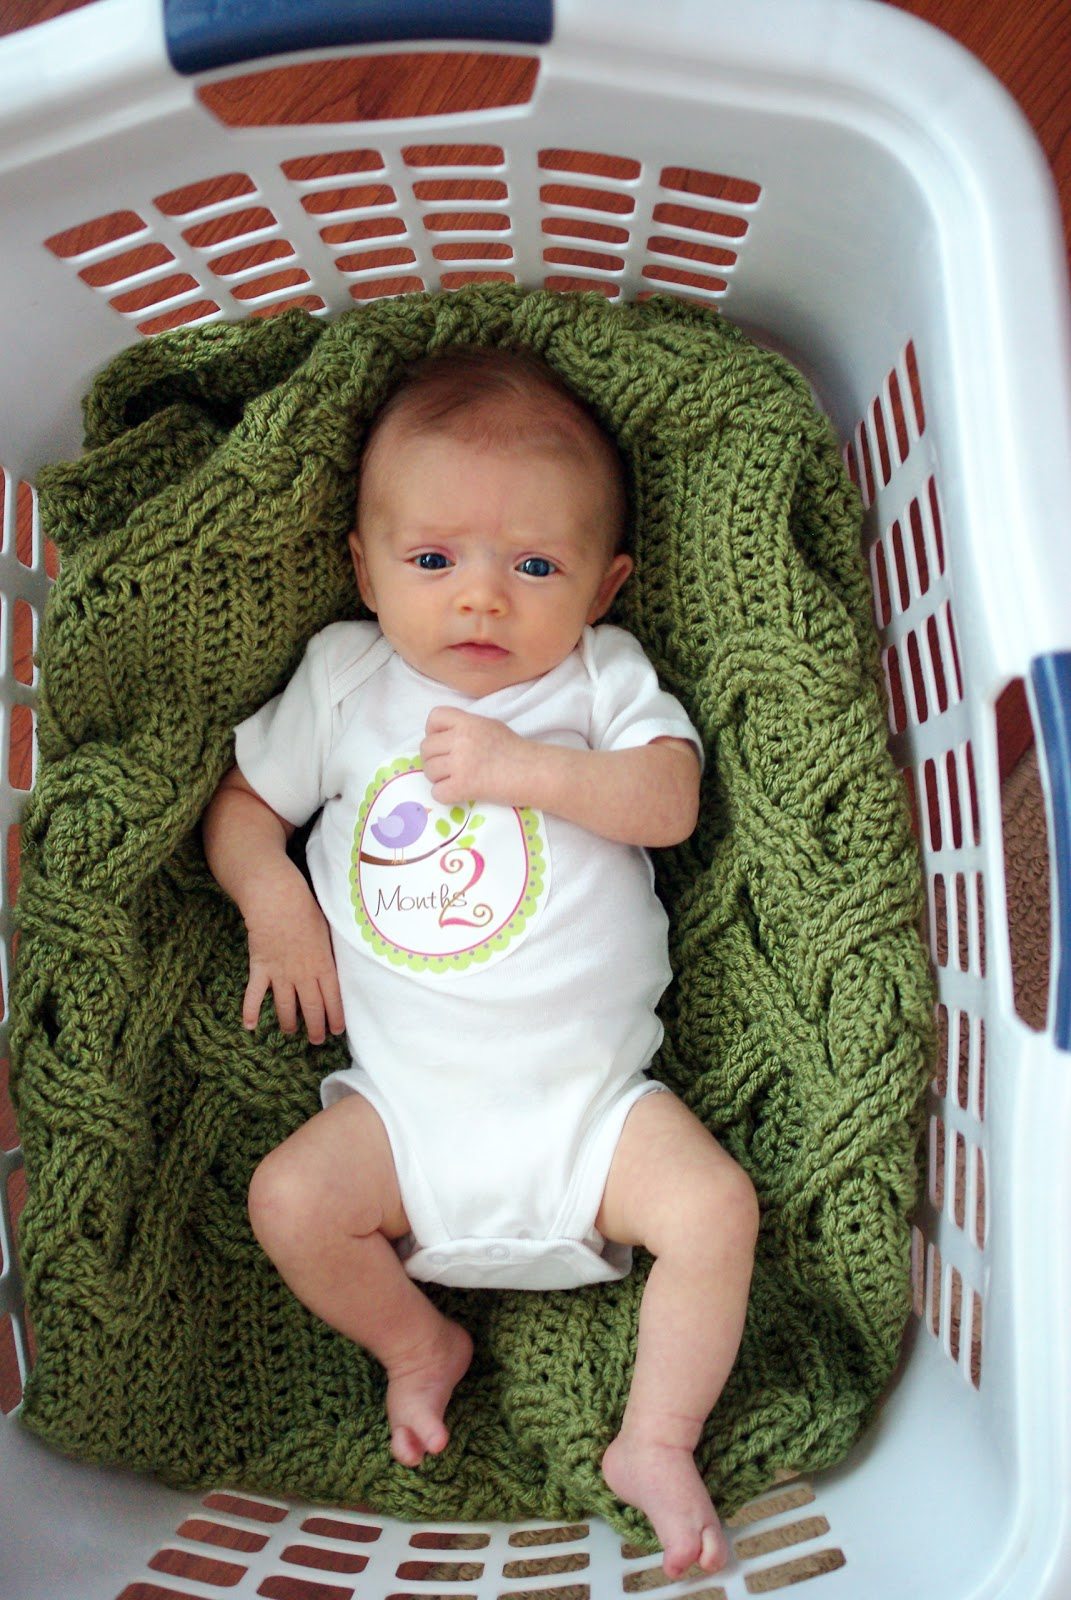 deb14937d5d5f Amanda s Life Commentary  2 Months Old!